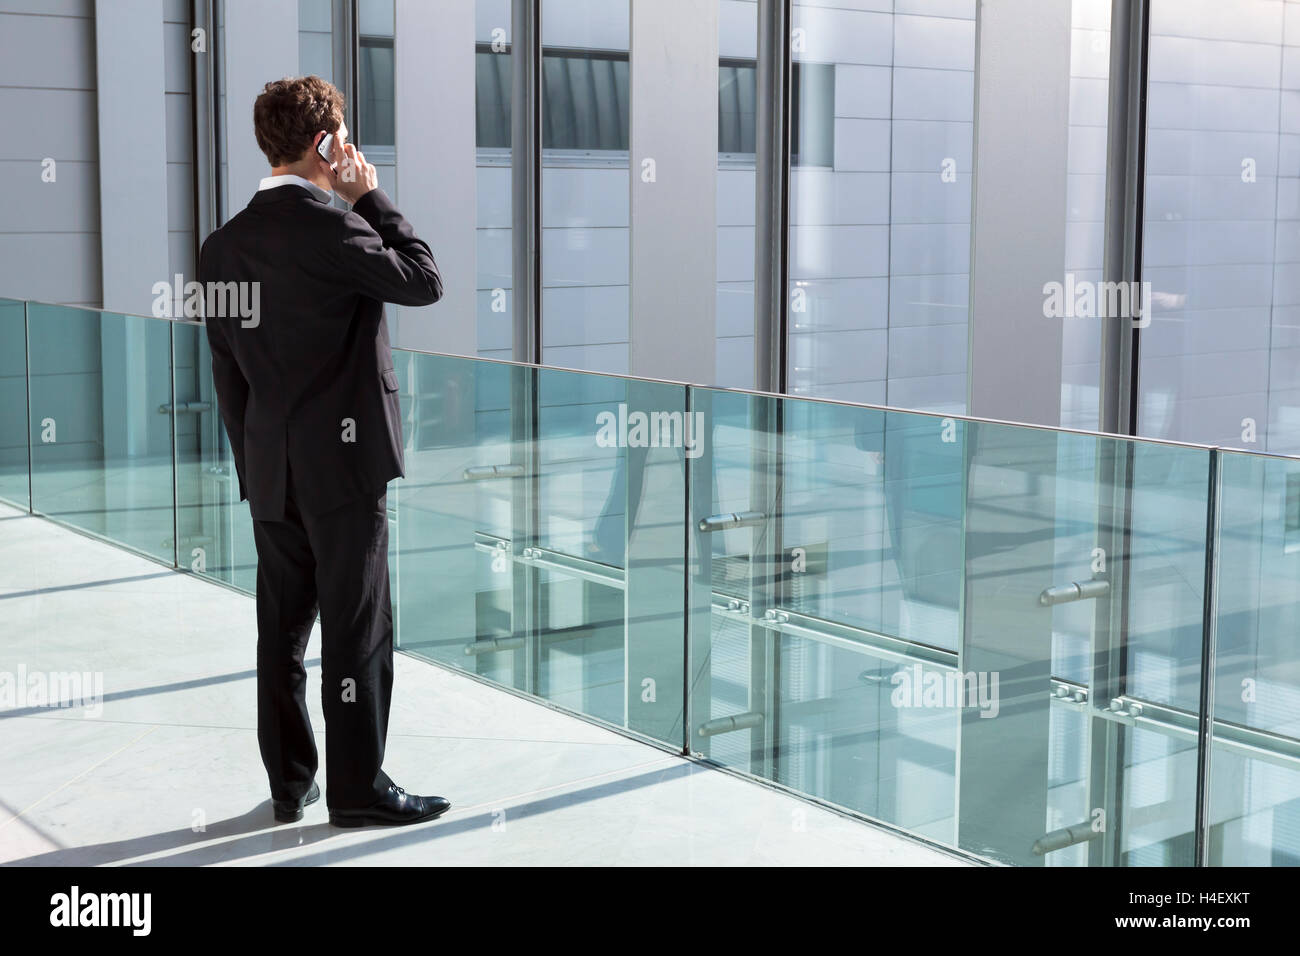 Businessman phoning with new technology smartphone in modern office building - Stock Image